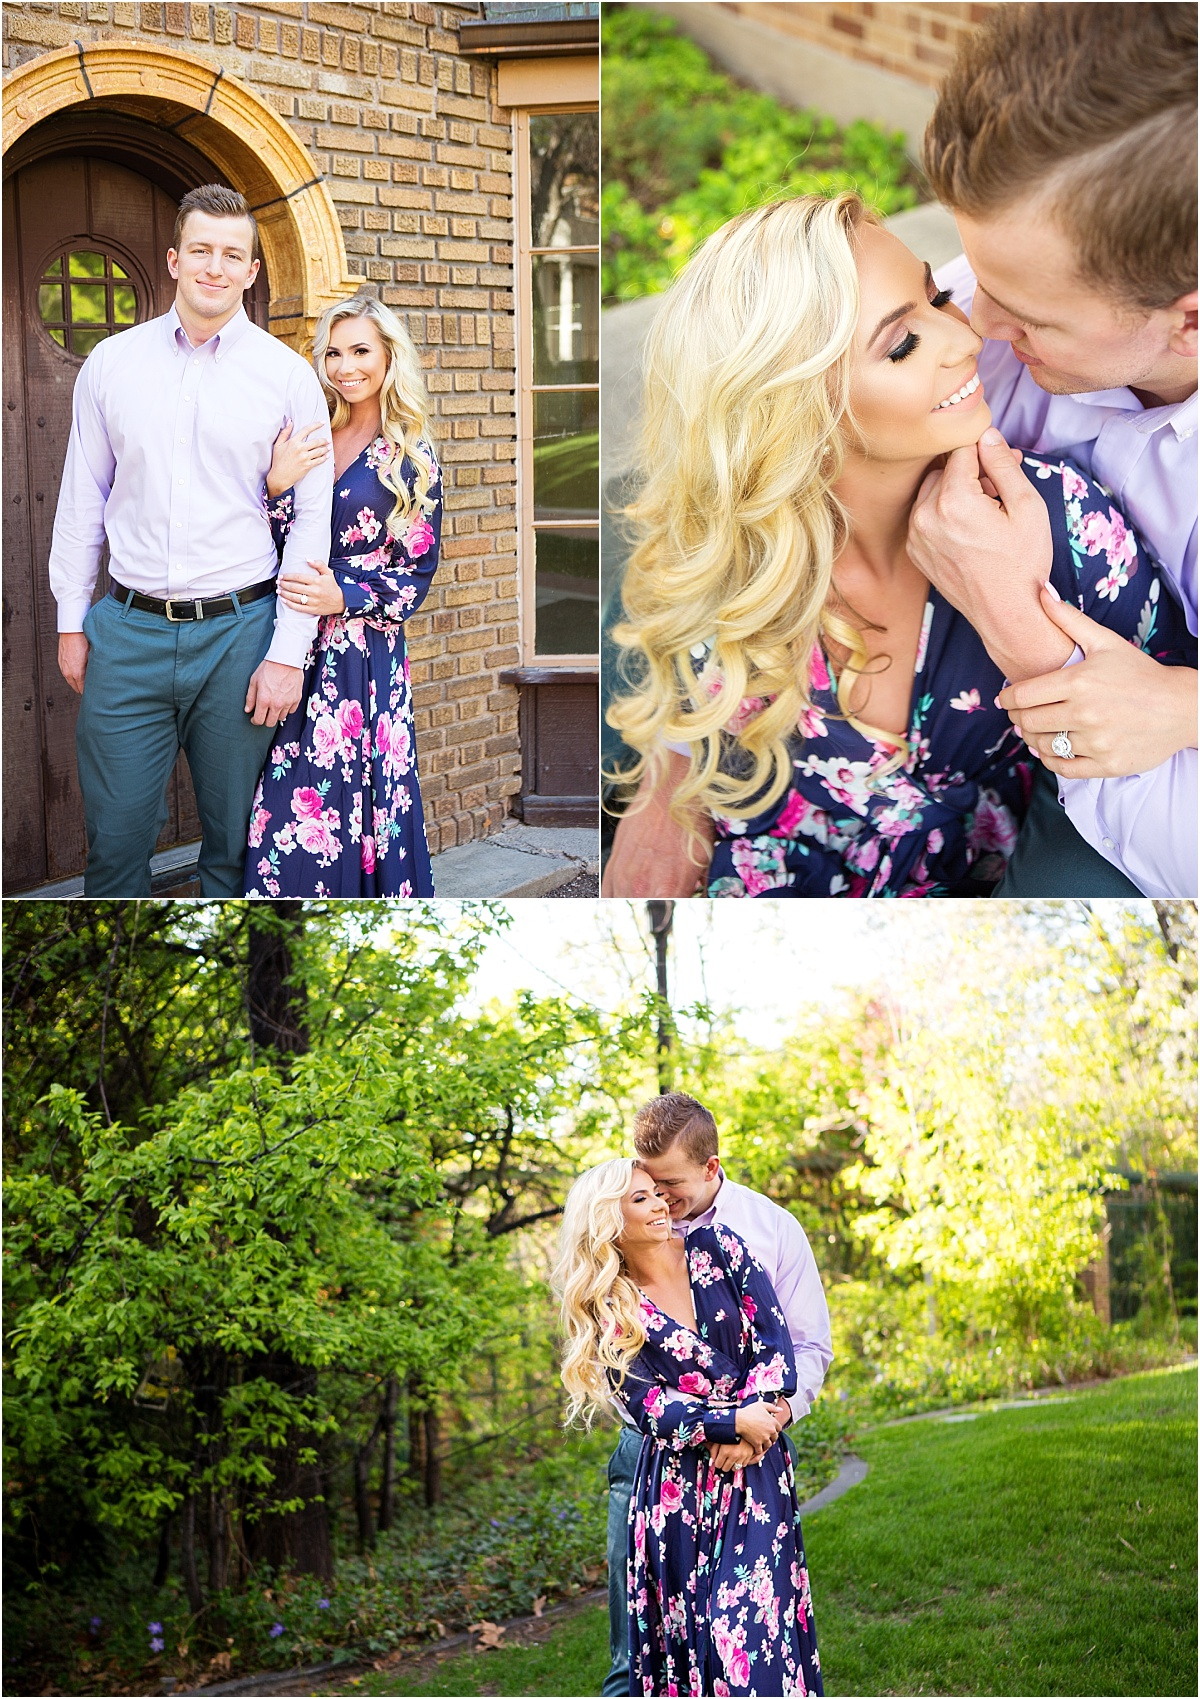 Salt Lake City Engagements | Utah Wedding Photographer | Garden Park Ward